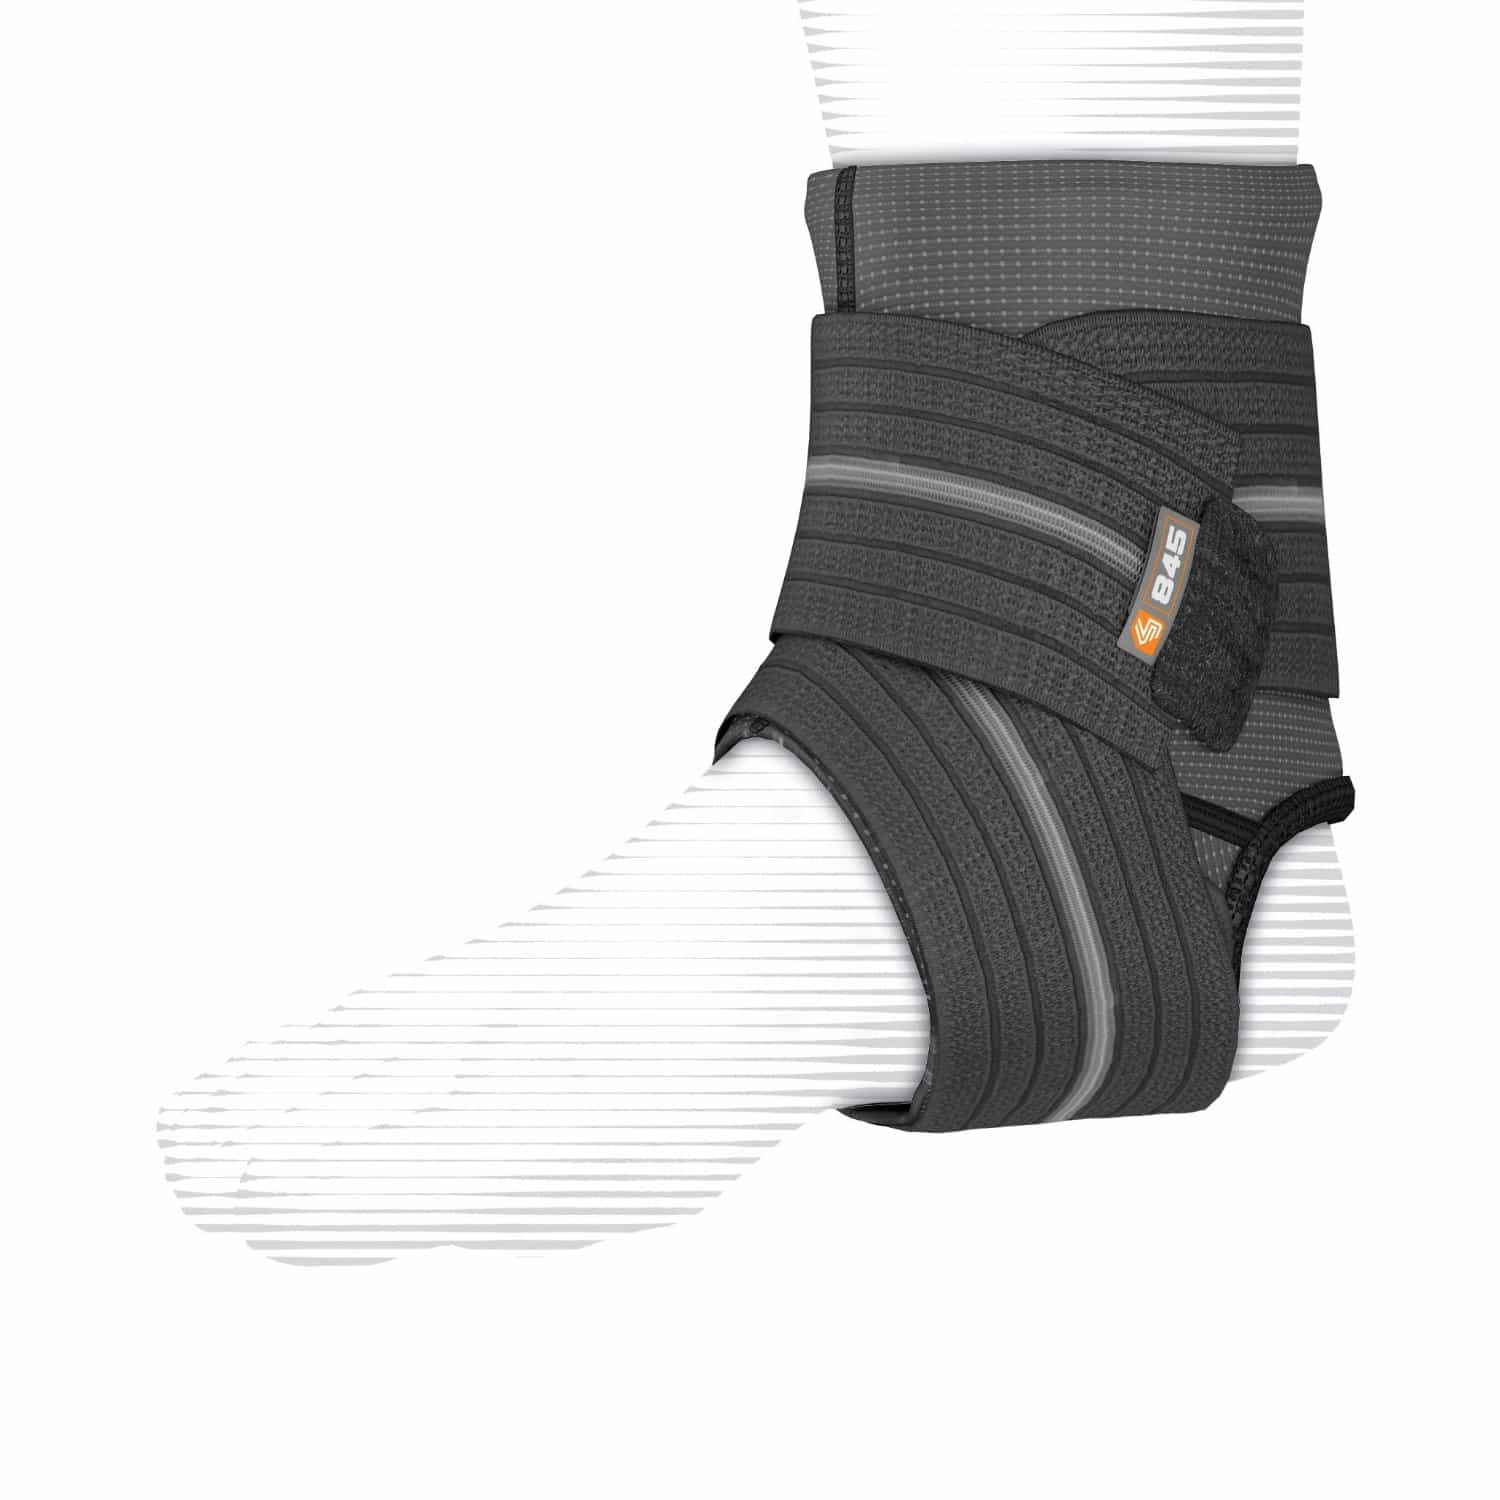 Ankle Sleeve with Compression Strap